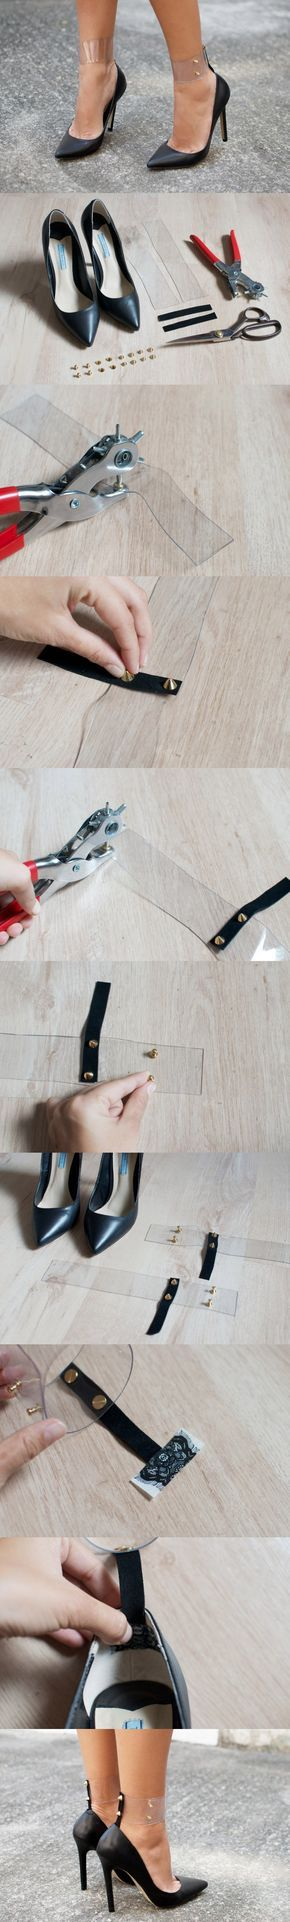 Amazingly Easy to Make DIY Fashion Projects - Transparent ankle straps!